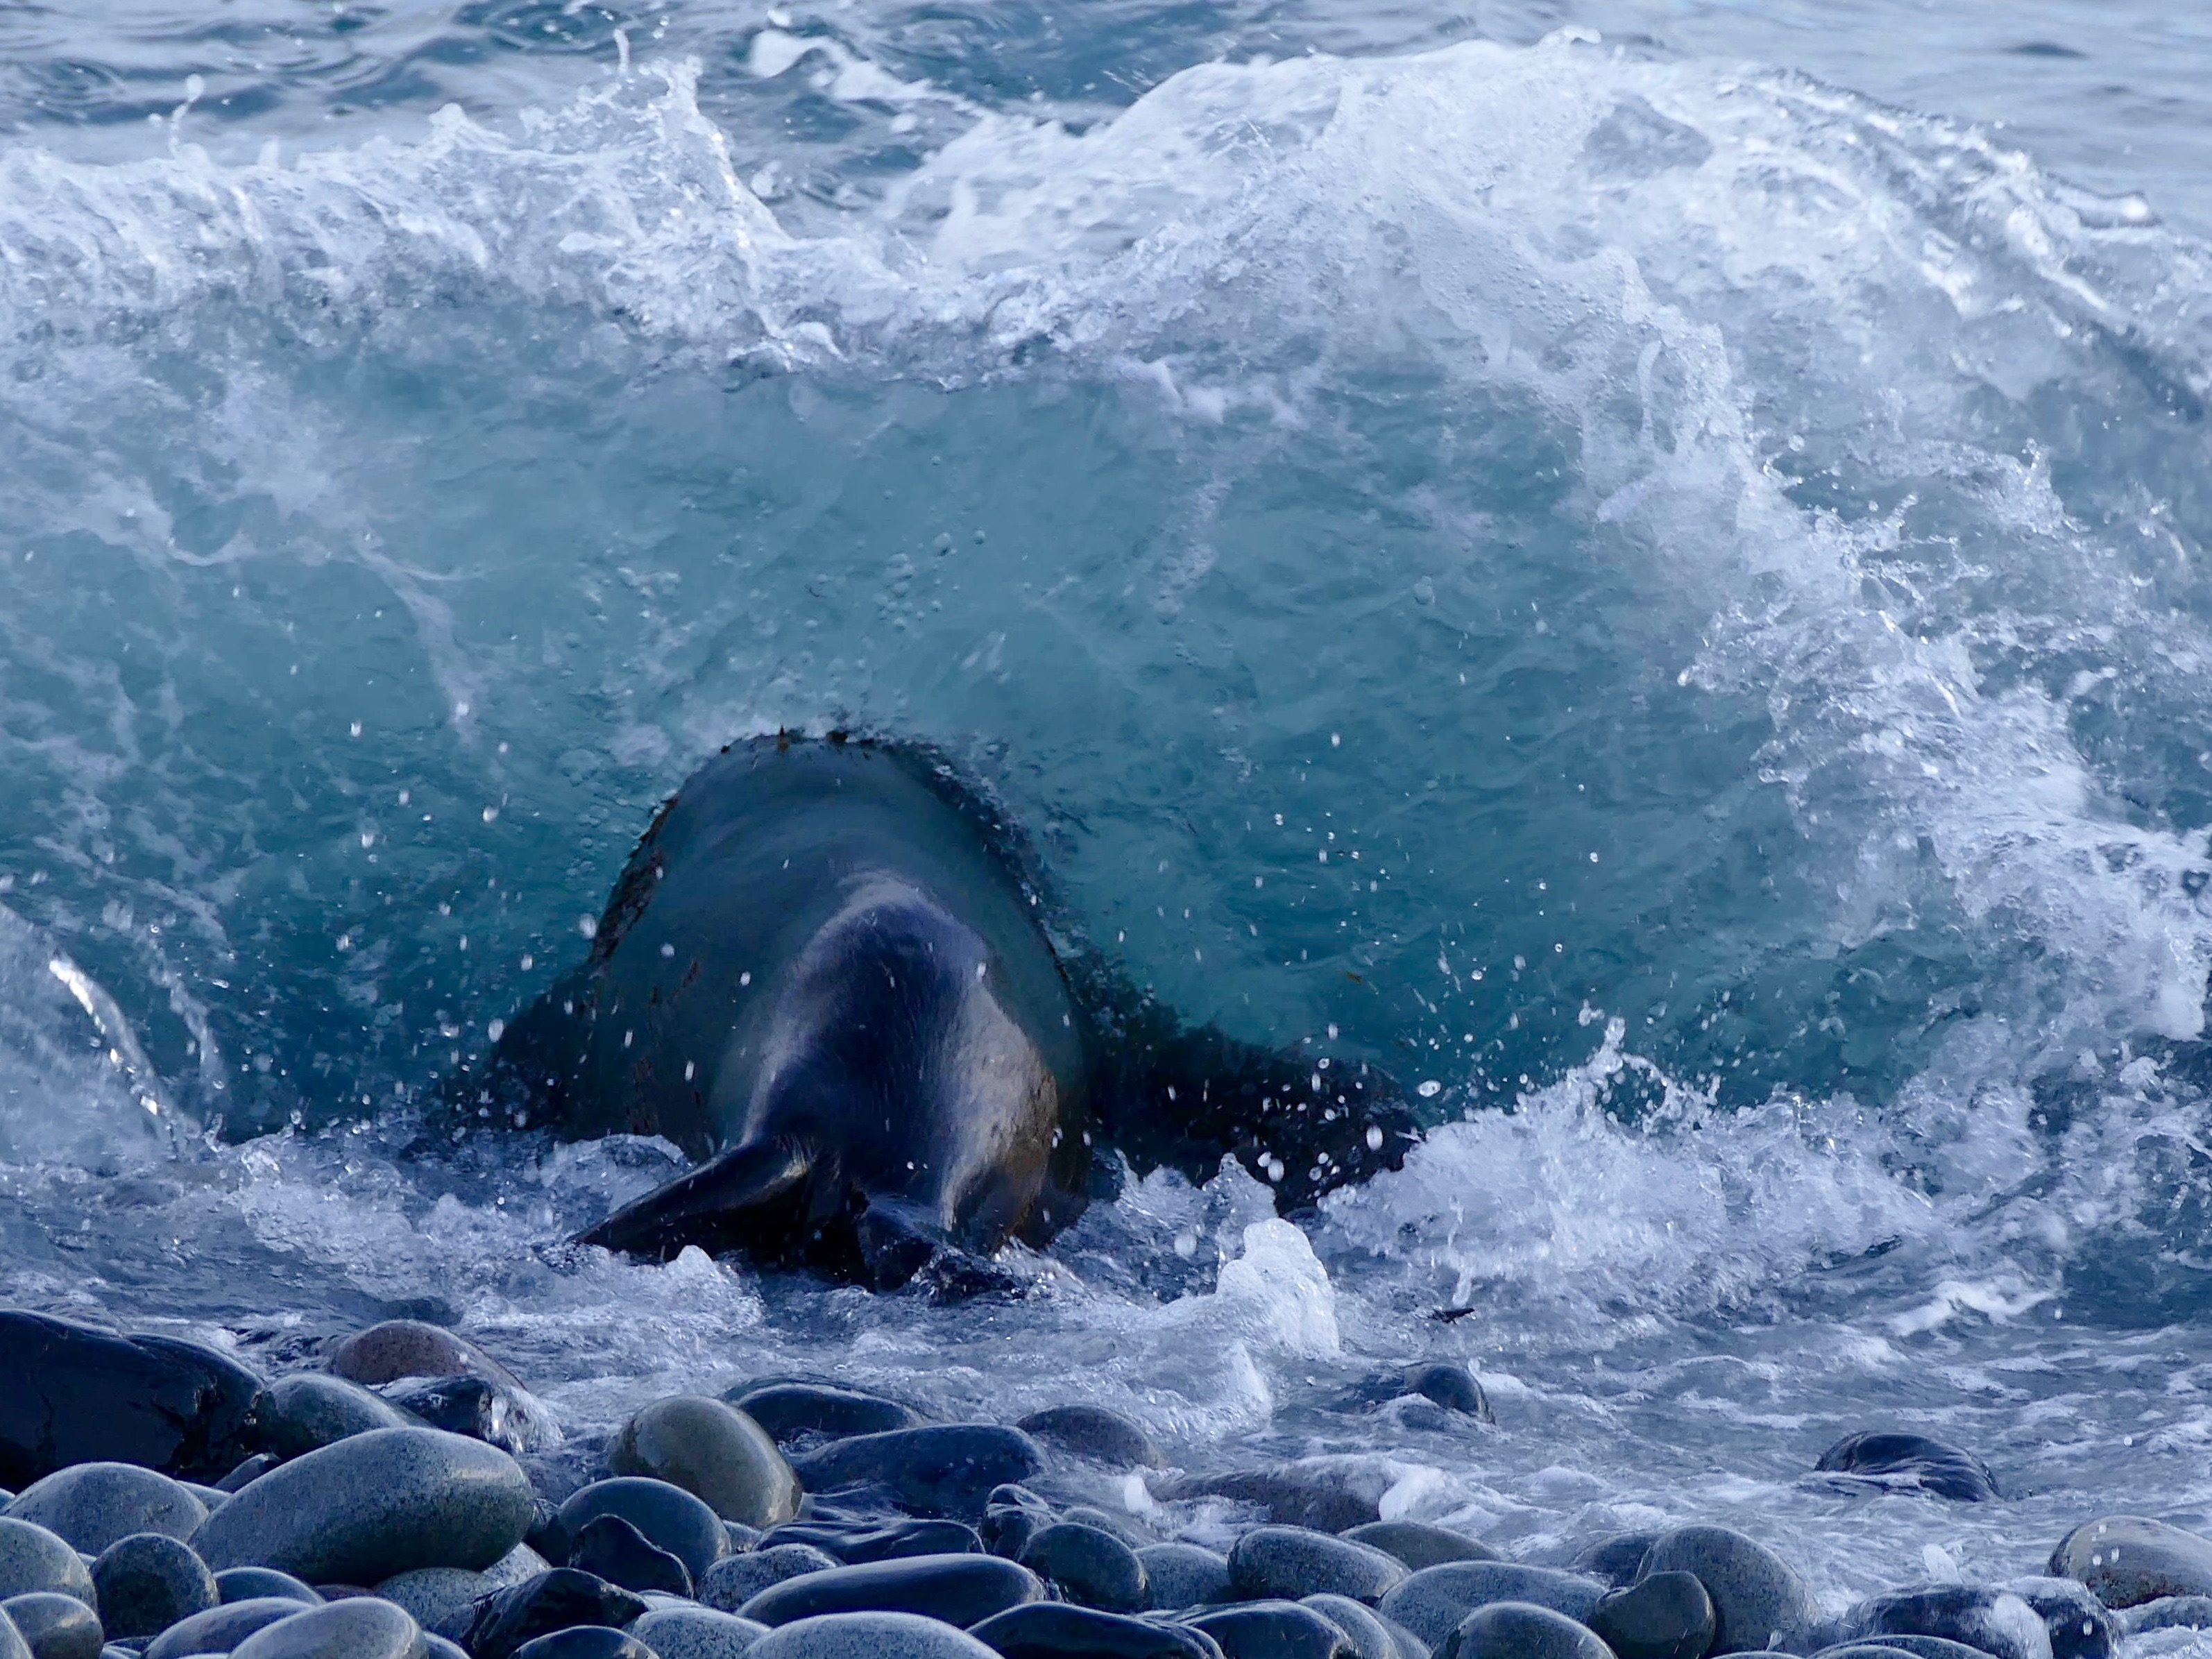 Fur seal diving into water at Fort Point, South Shetlands, resting between breeding and migration to winter at sea